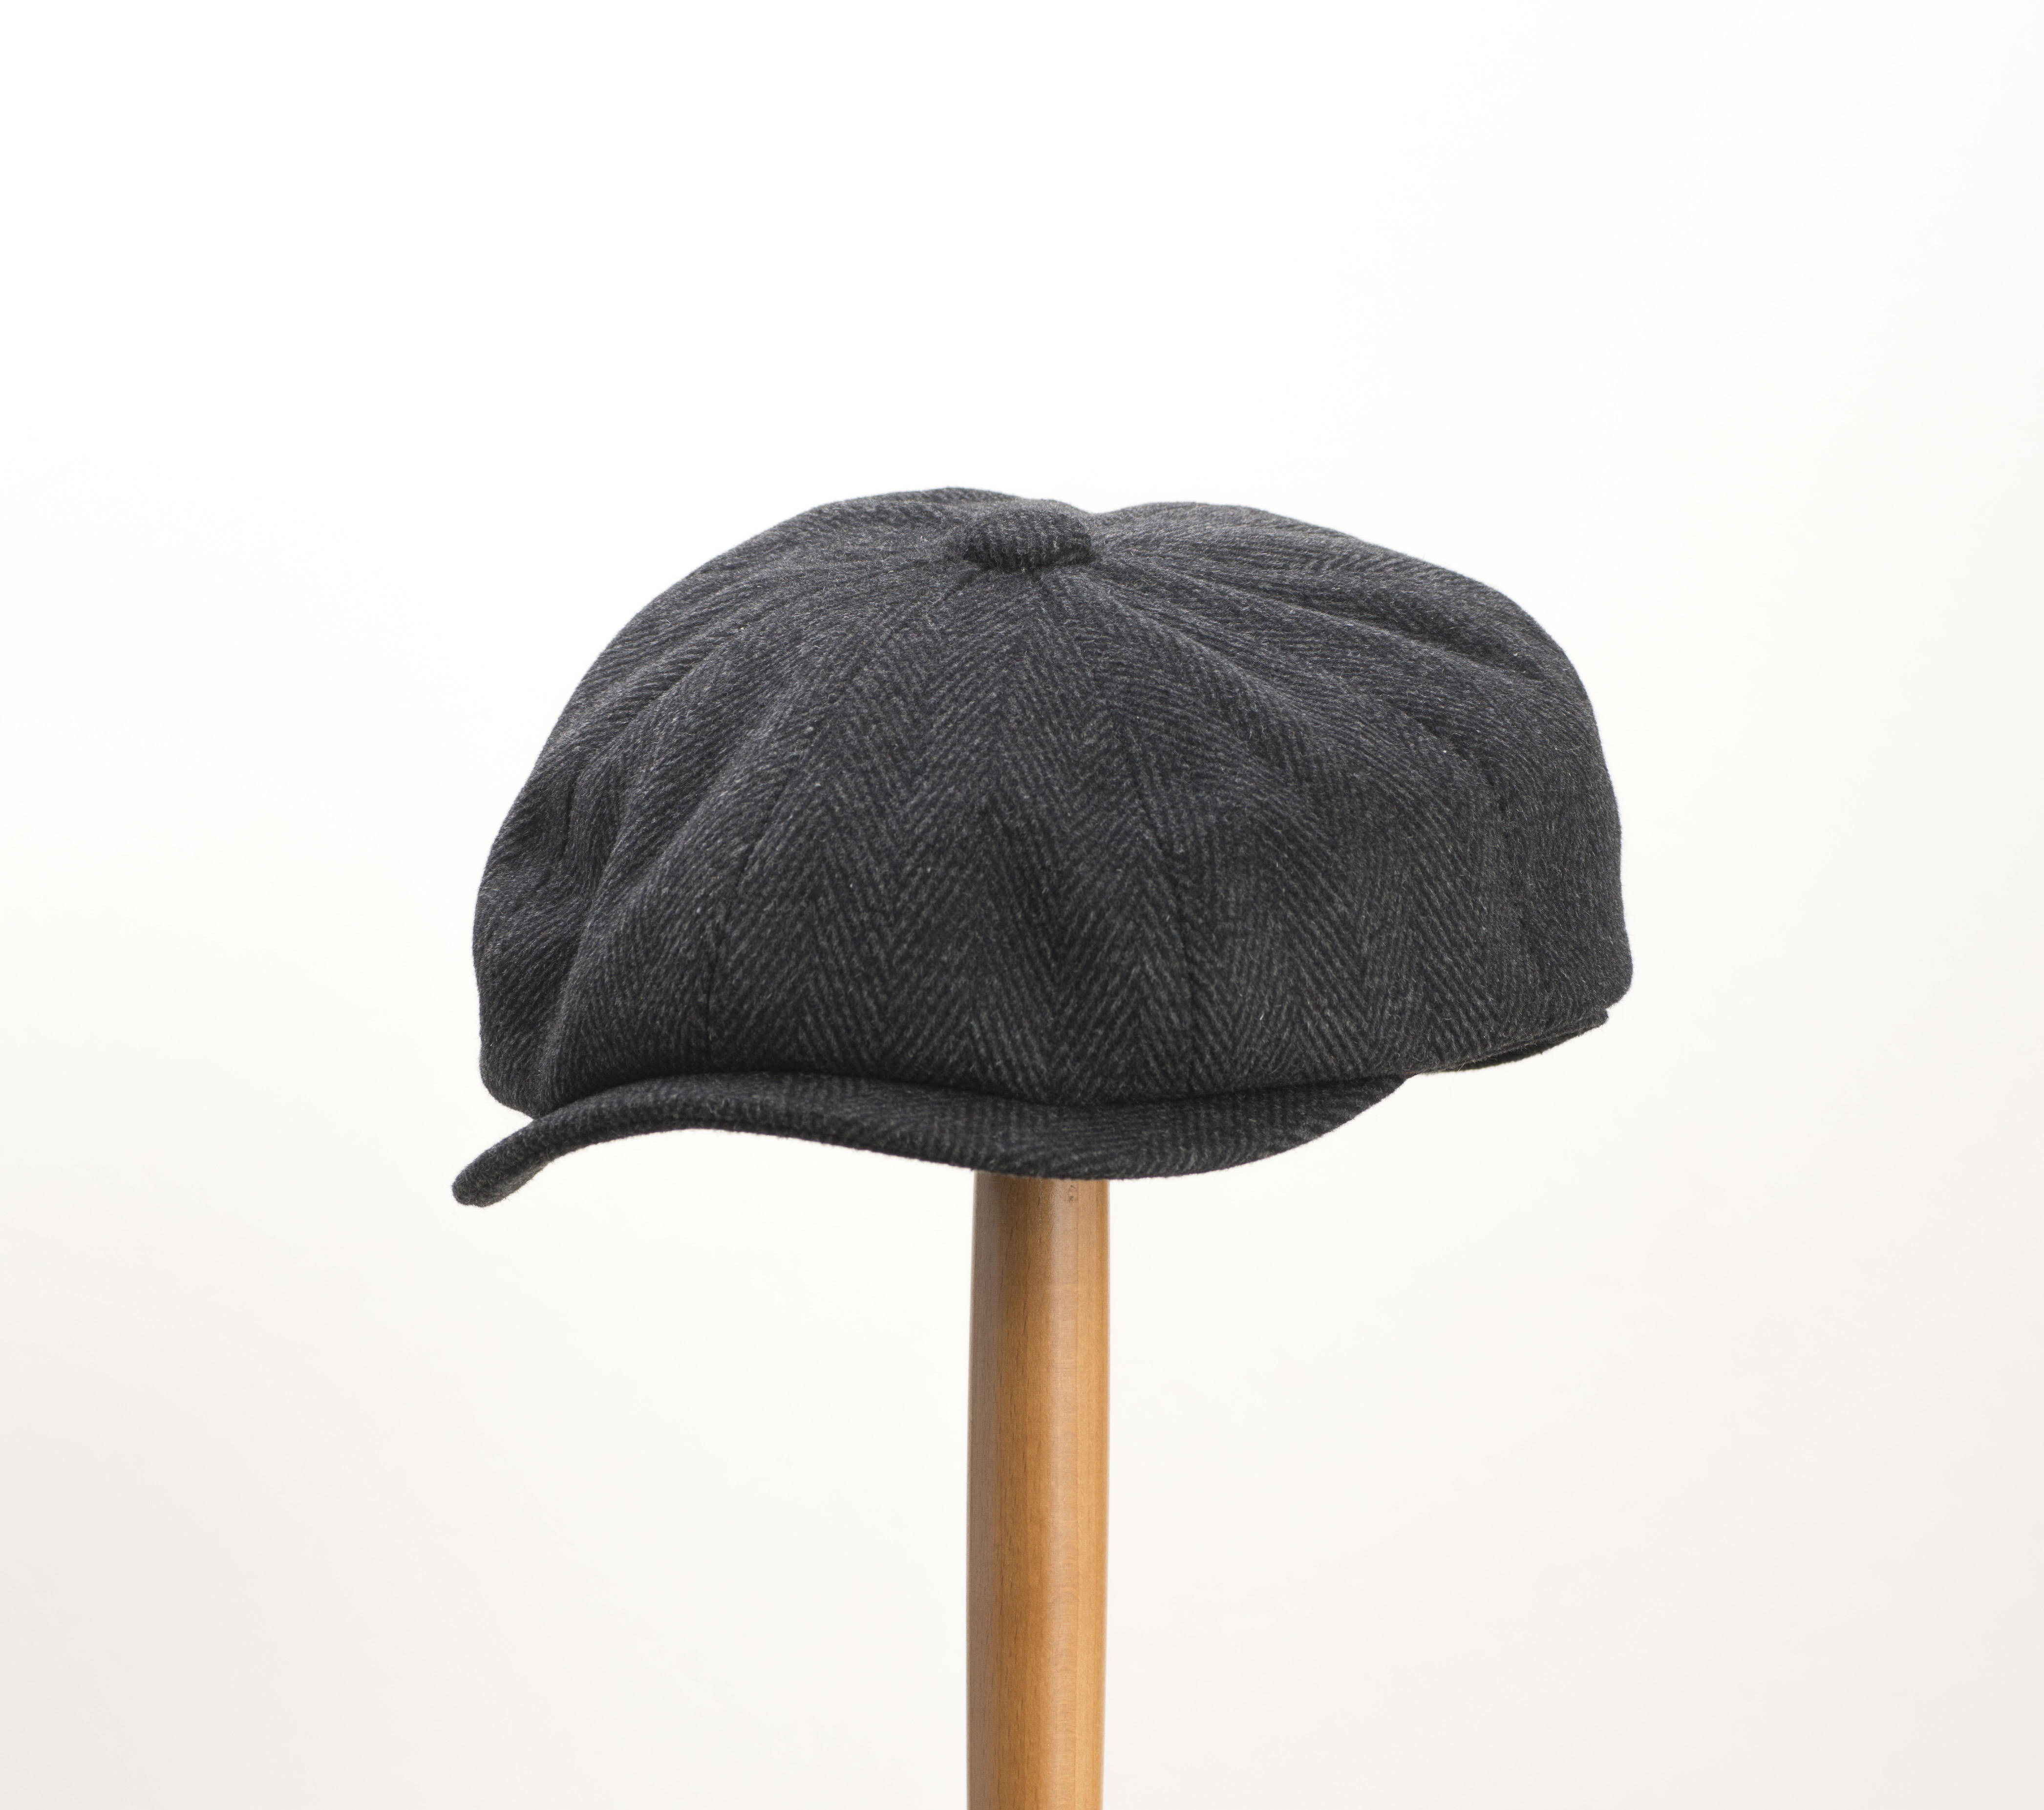 2e43f8a1b4e Whiteley Herringbone Tweed Newsboy Cap - Black